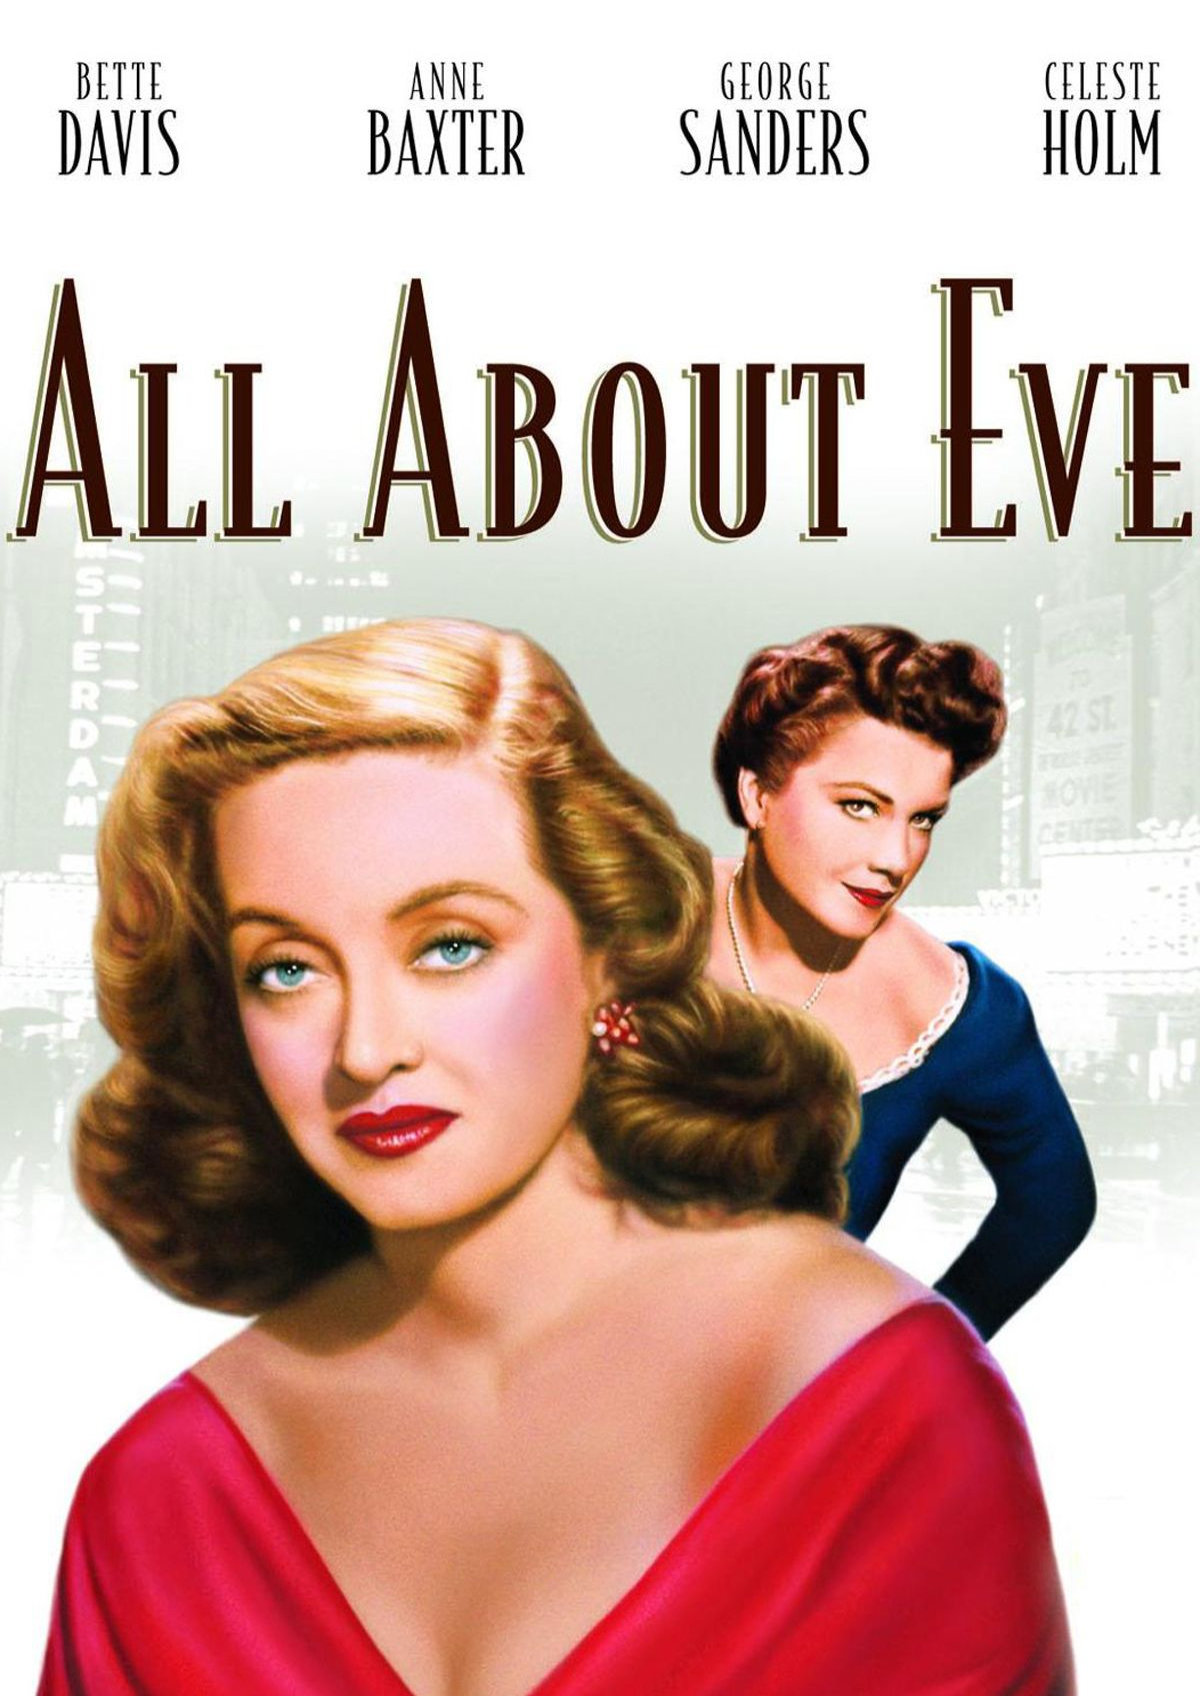 'All About Eve' movie poster